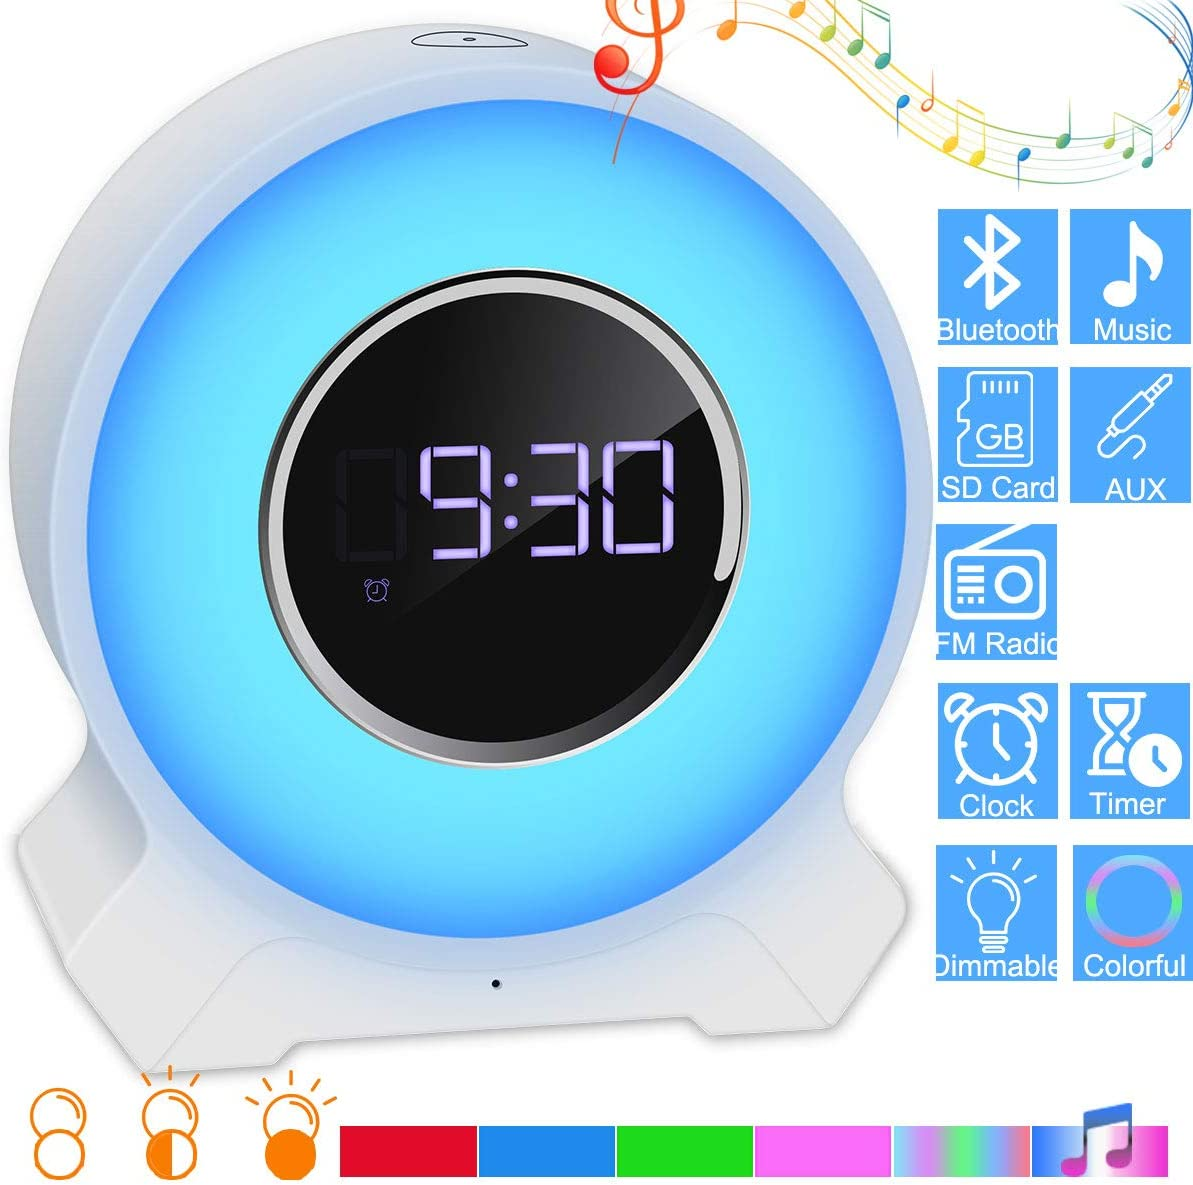 EVISTR Bedroom Bluetooth Speaker Alarm Clock – Touch Control Bedside Night Light Music Player Wireless Bluetooth Speaker with Melody Light Support Hands Free Phone Call, TF Card, Aux